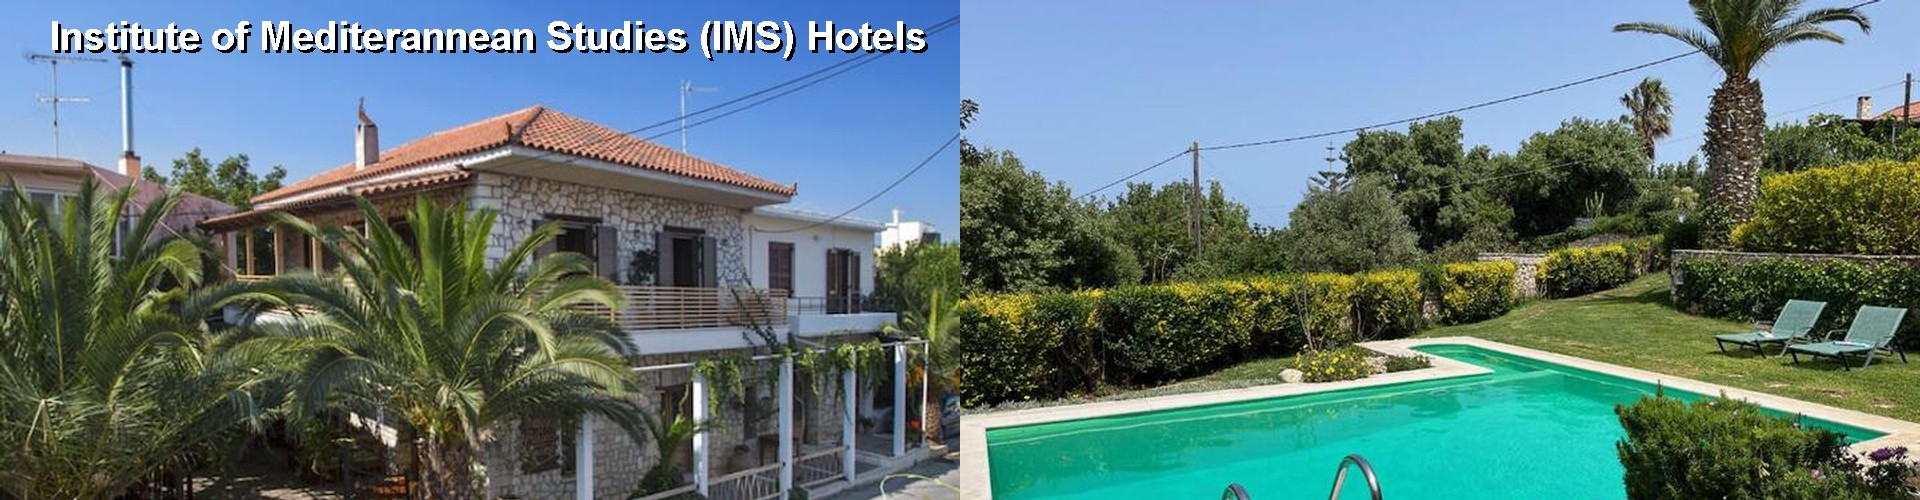 5 Best Hotels near Institute of Mediterannean Studies (IMS)